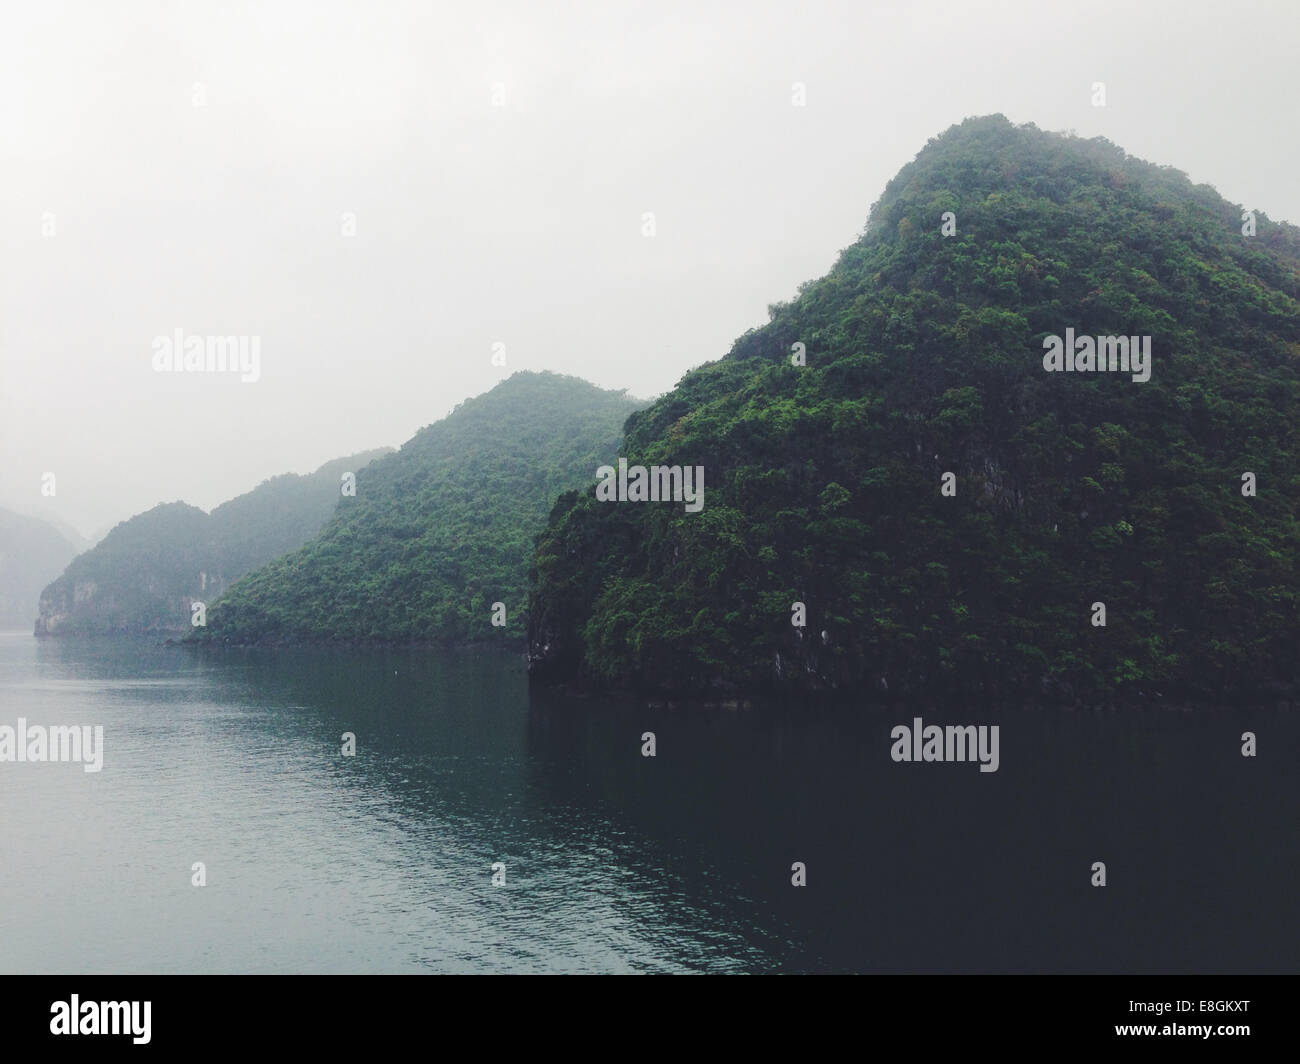 View of limestone islands - Stock Image